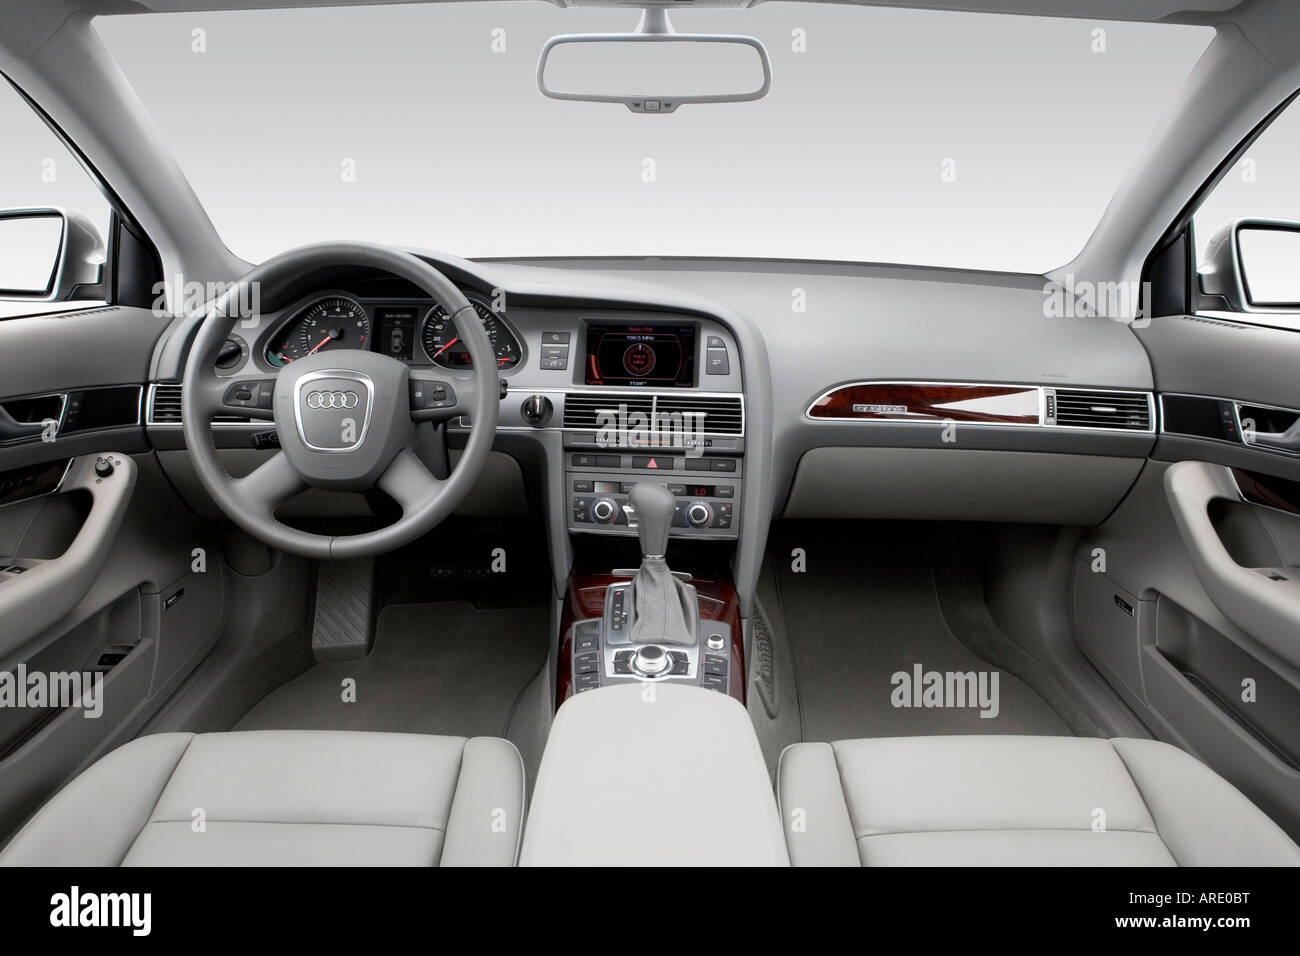 2006 Audi A6 Avant 32 Quattro In Gray  Dashboard, Center Console, Gear  Shifter View